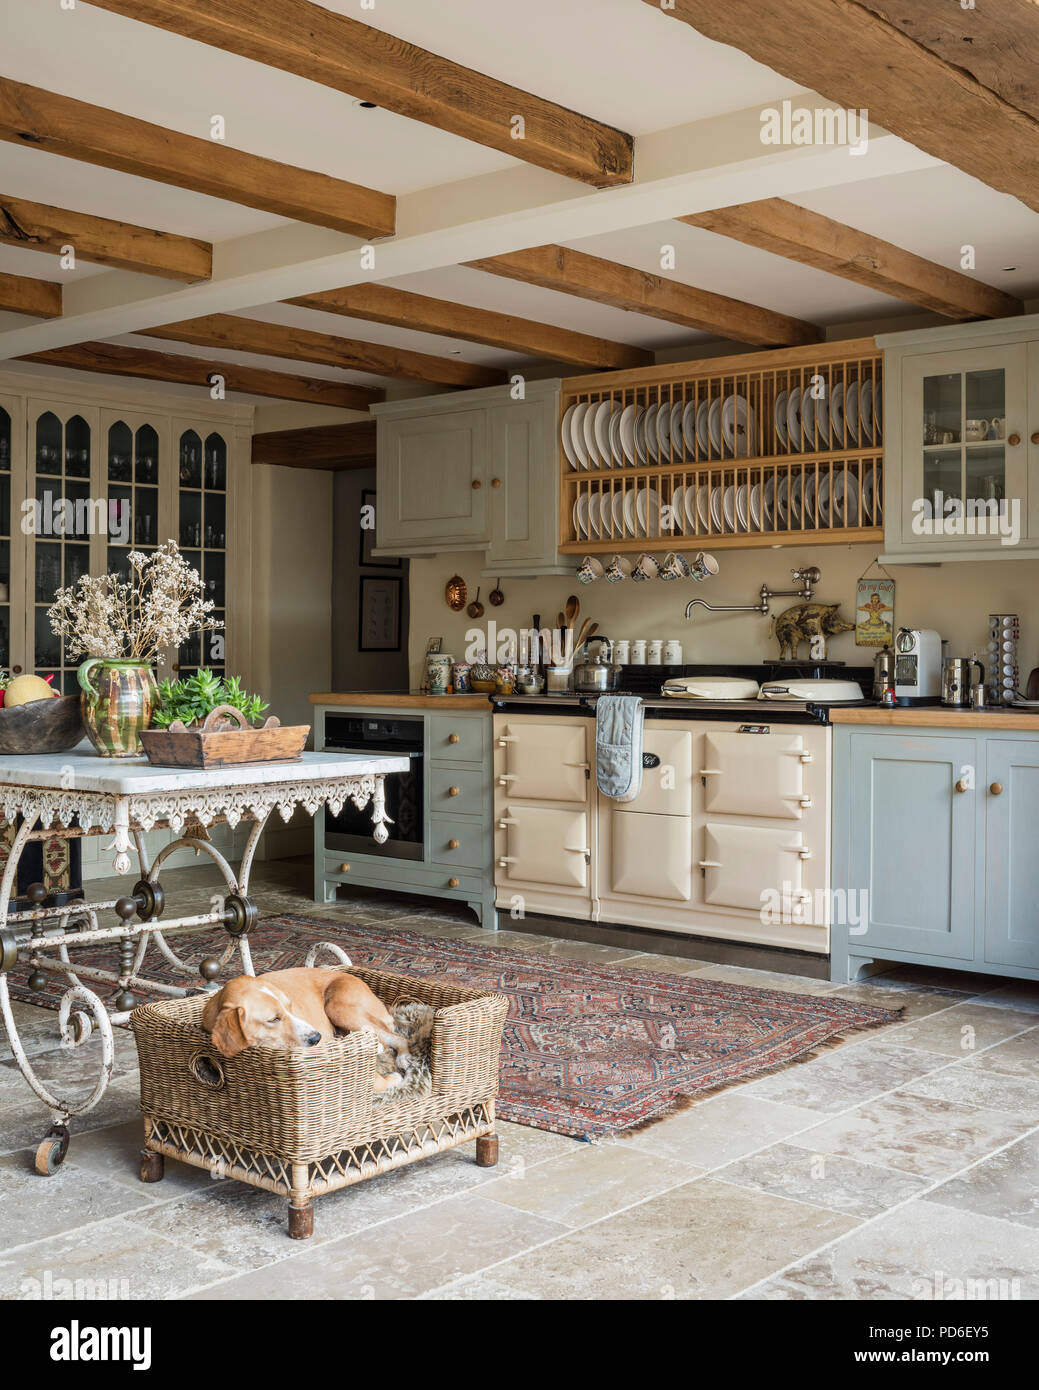 Light Blue Fitted Farmhouse Kitchen With Plate Rack And Sleeping Dog In Basket Stock Photo Alamy